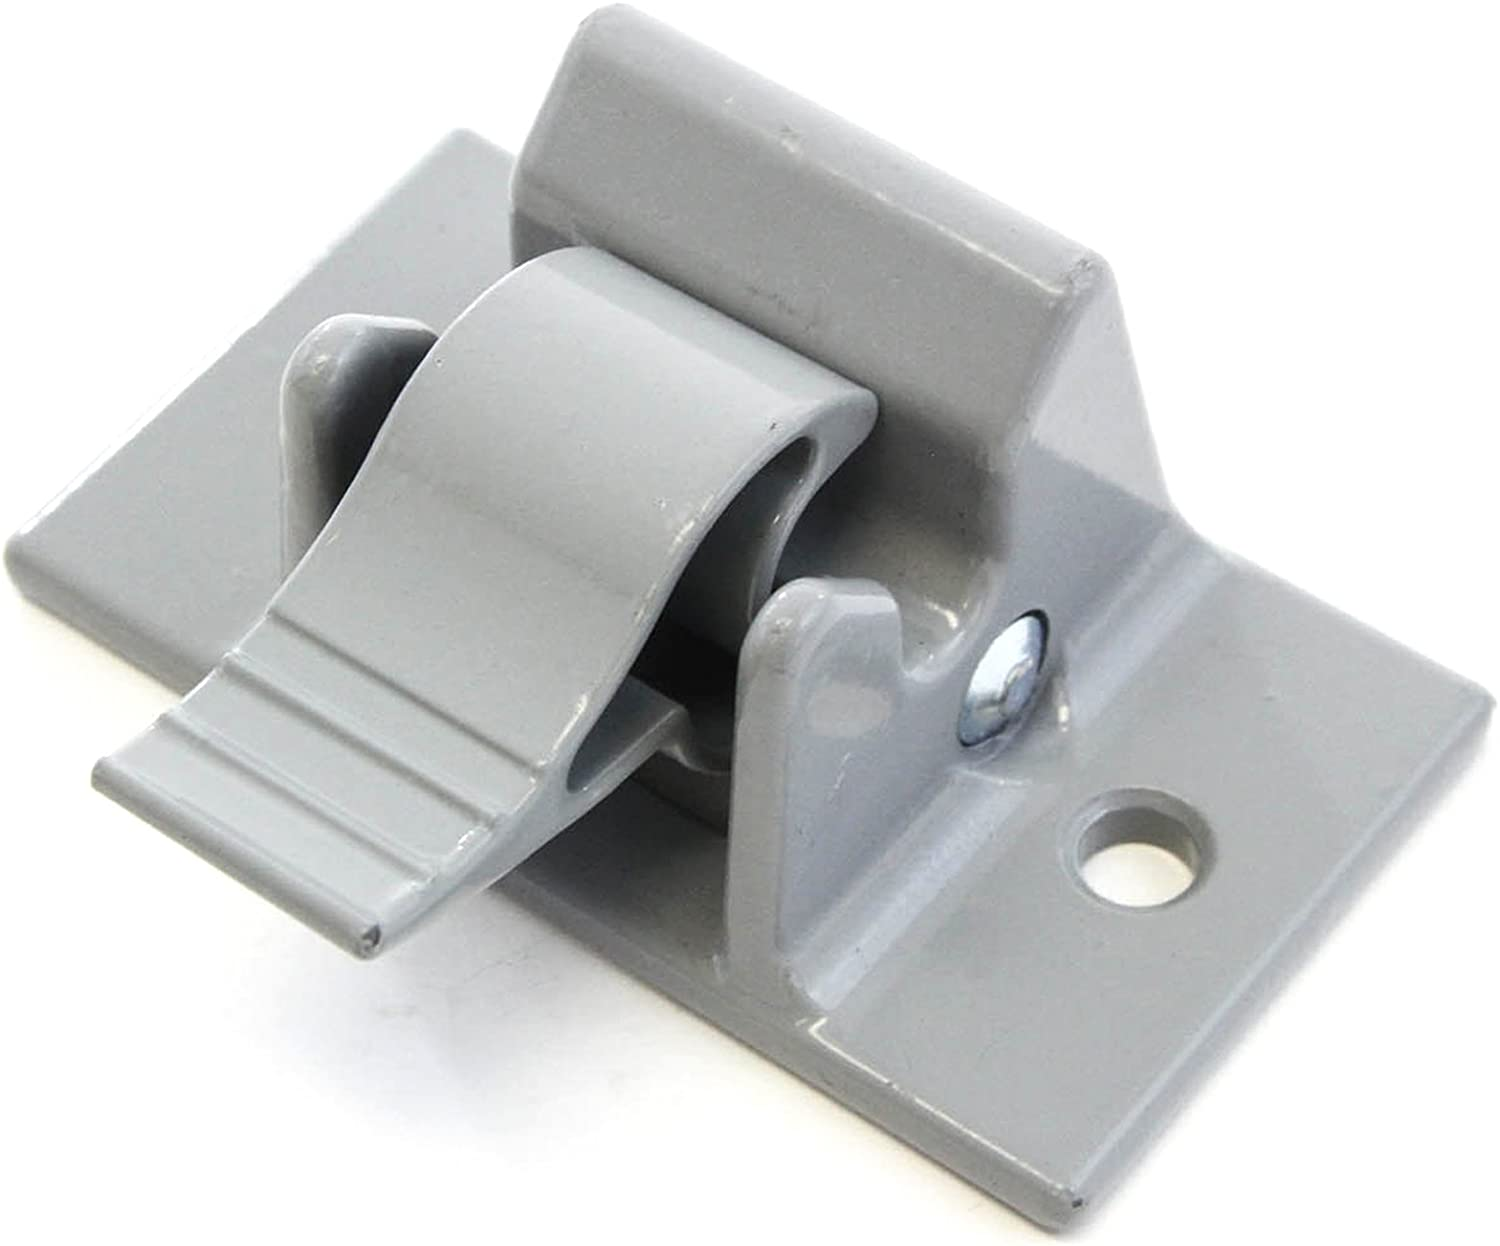 Red Hound Auto Mounting Bracket Lower Awning for Dometic Sunchaser Arm Bottom Replacement Gray RV Camper Trailer